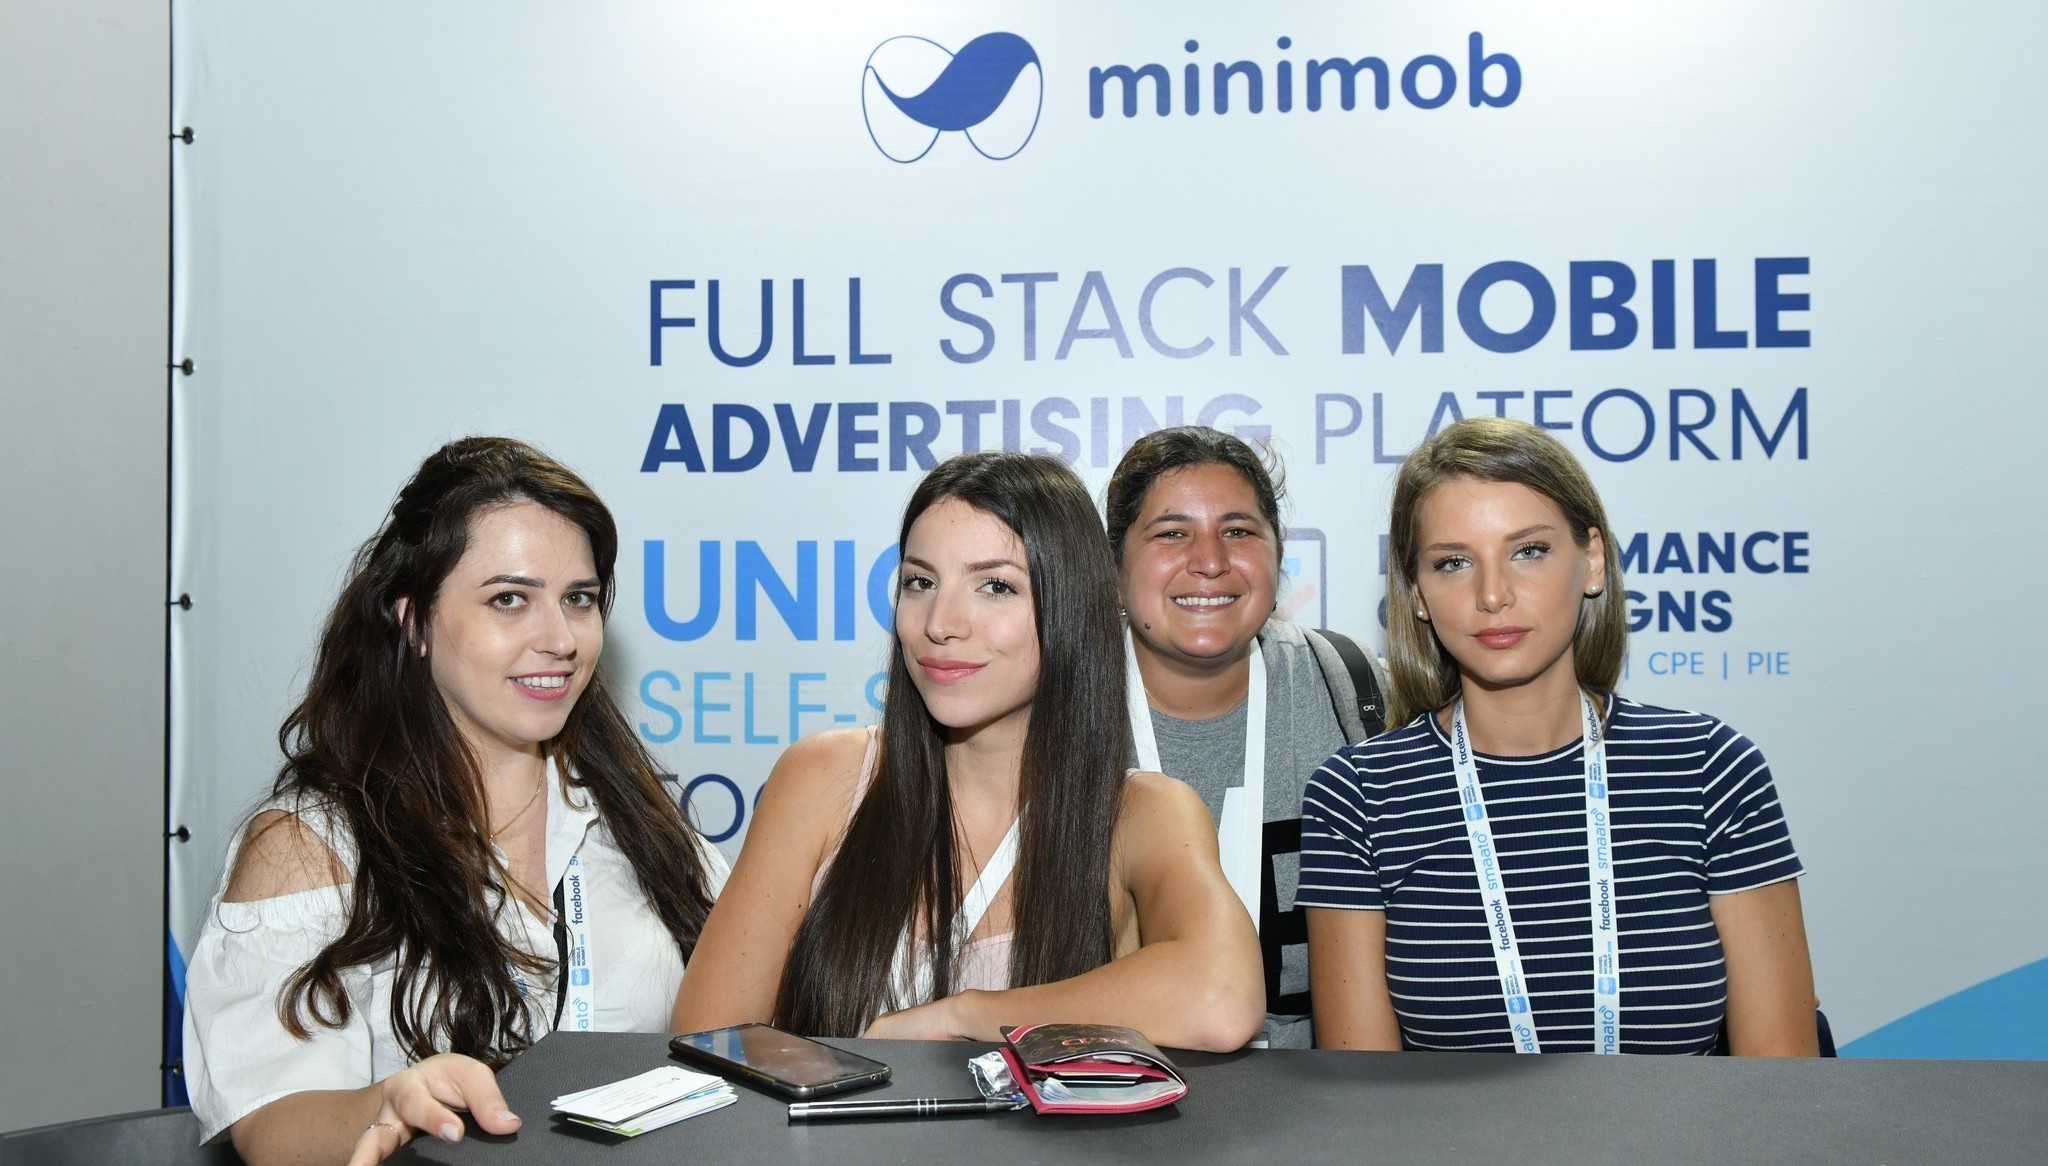 """In Affiliate Industry Anyone Can Be Your Competitor and Partner At the Same Time,"" - Minimob Shares Industry Insights"